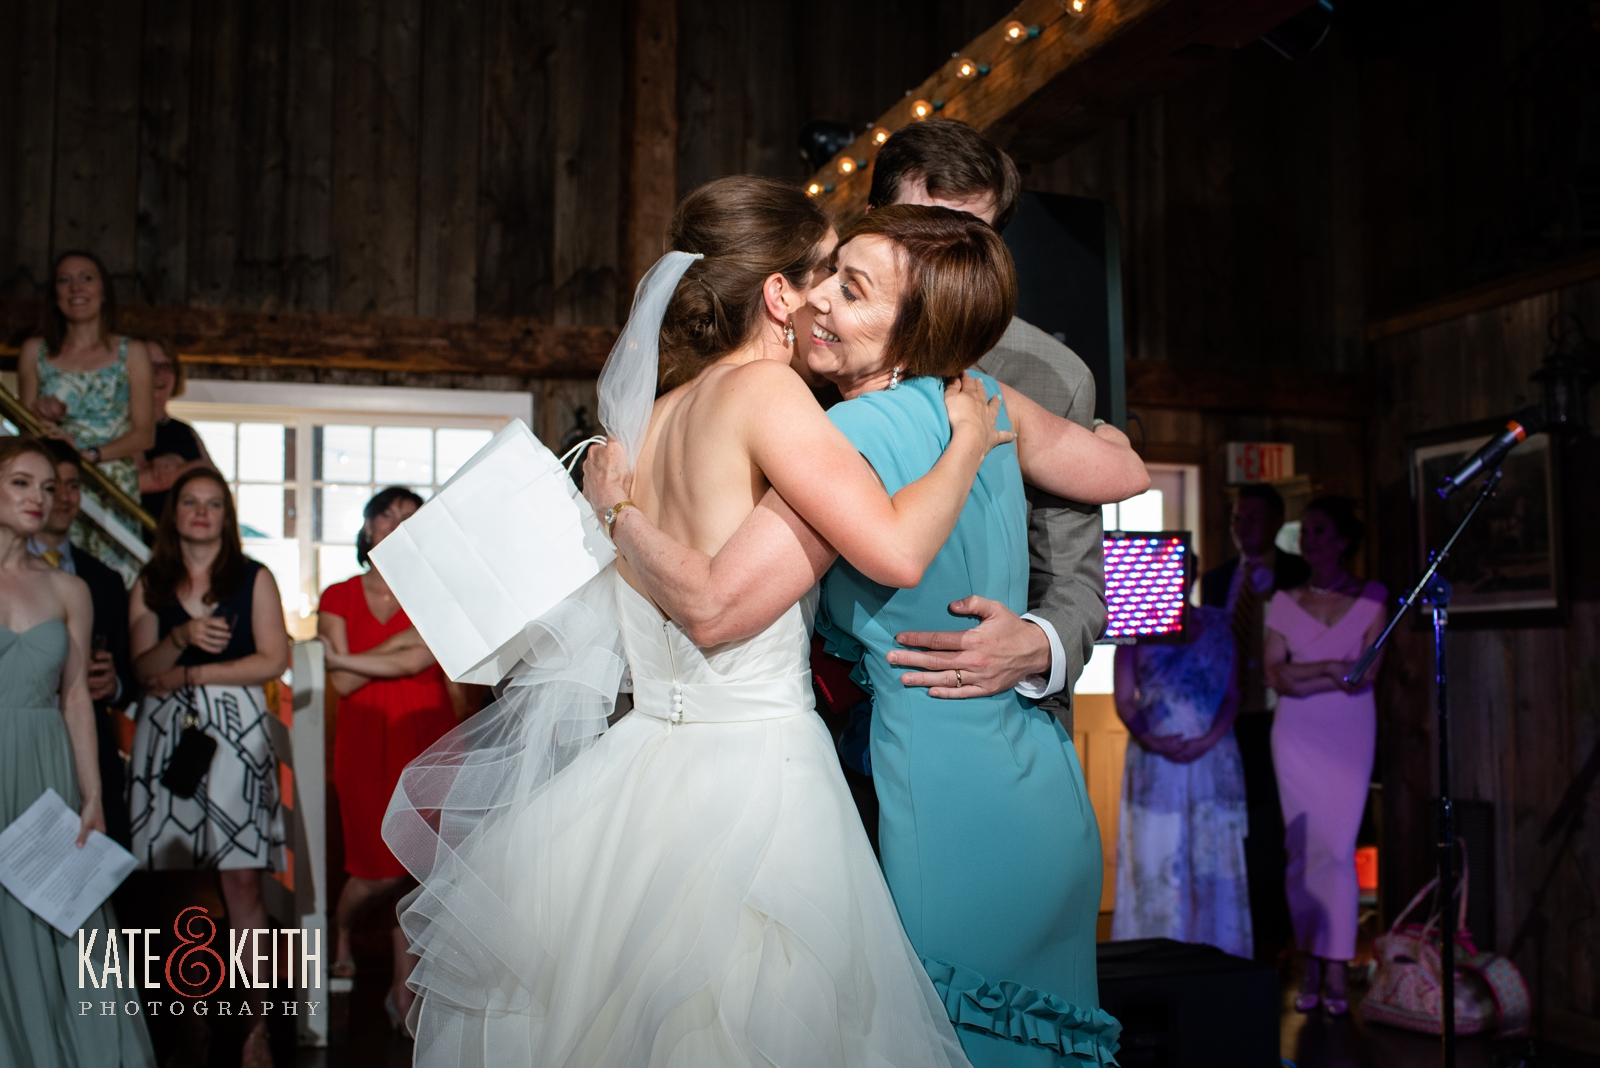 Grafton Vermont wedding photographers capture special moments with family